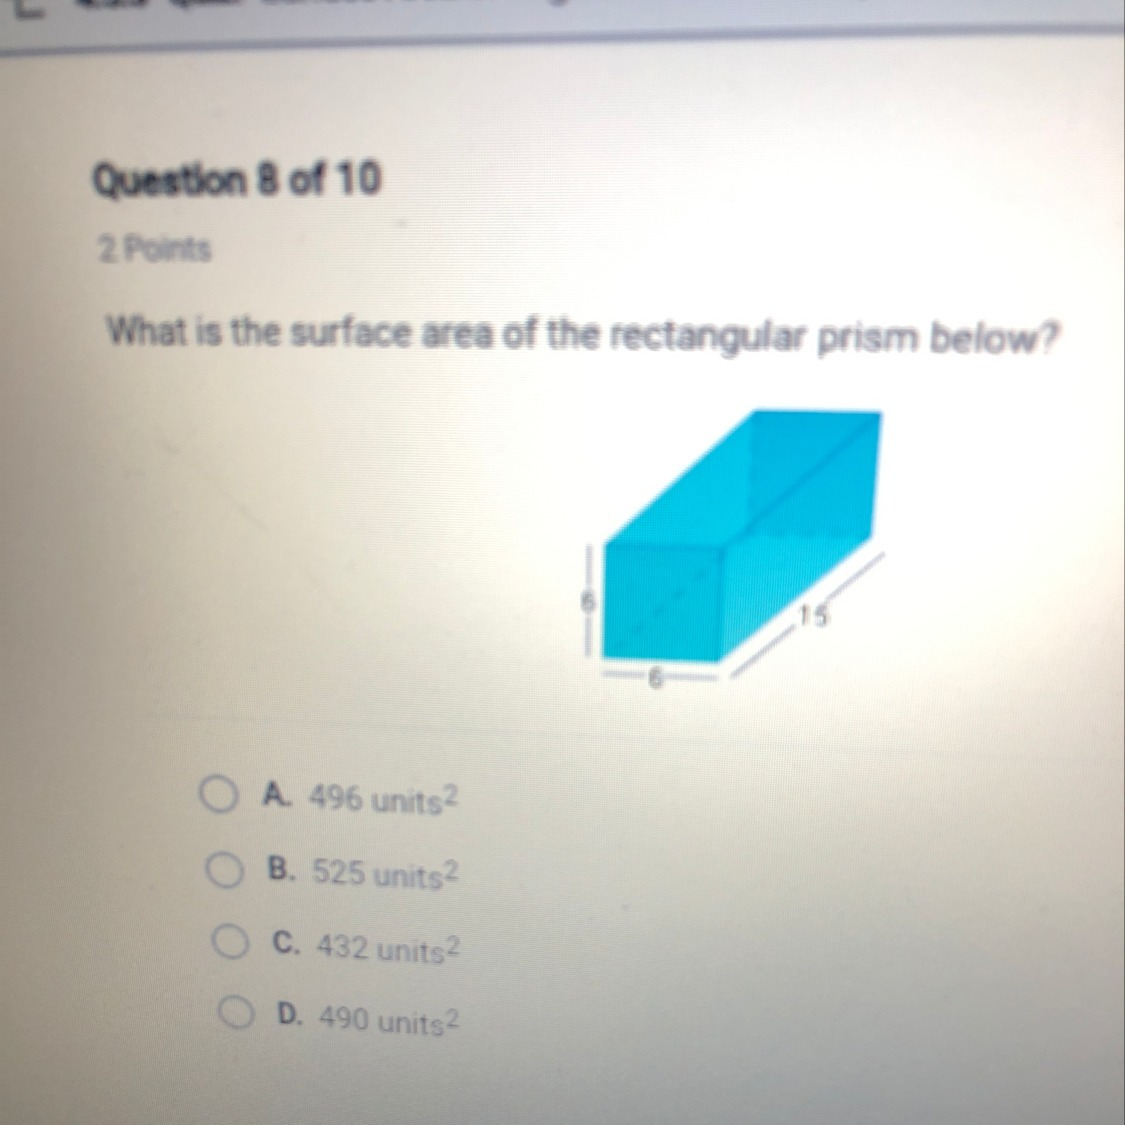 What Is The Surface Area Of The Rectangular Prism Below